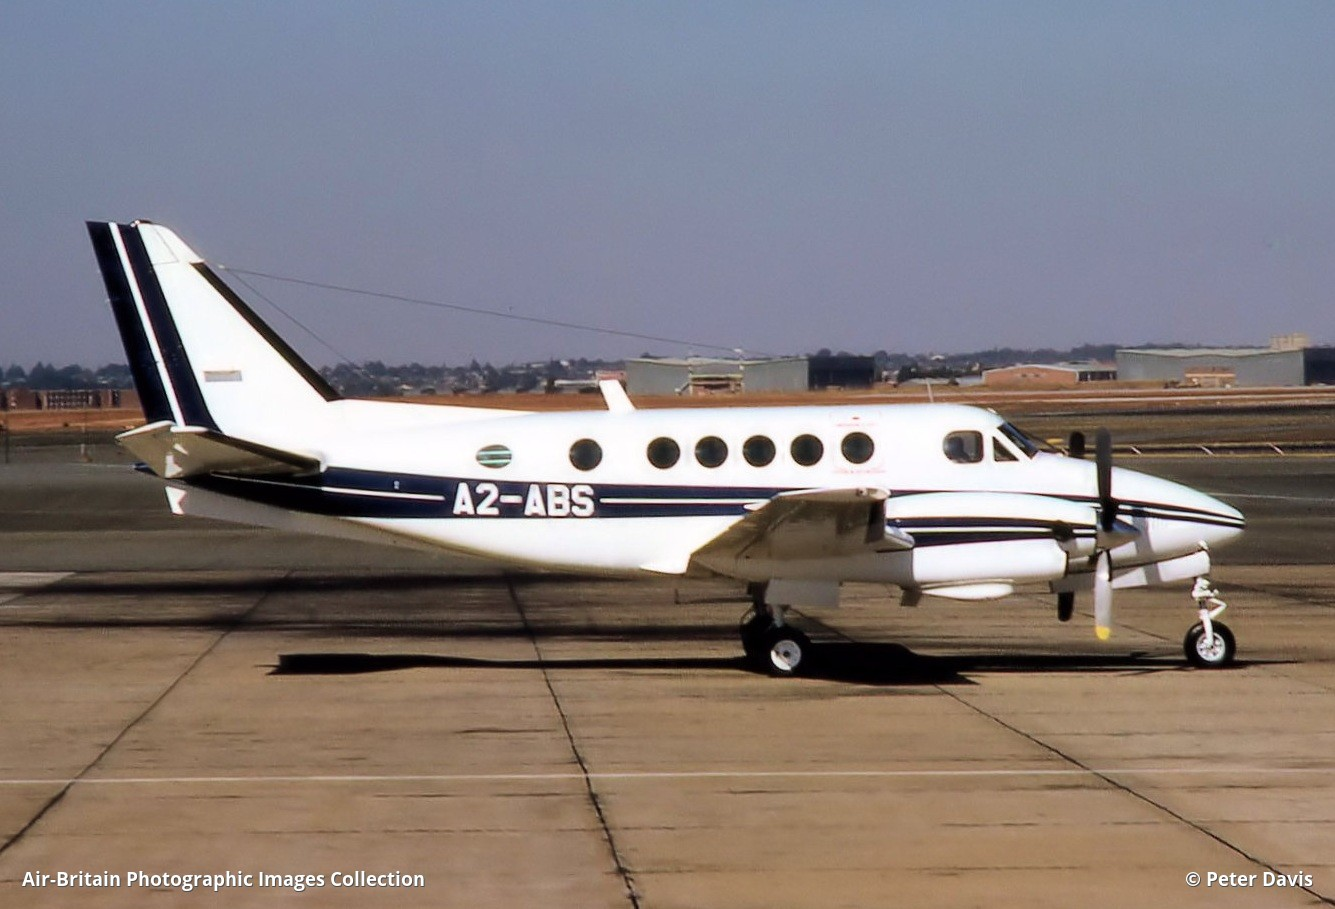 Beech a100 king air a2 abs b 105 de beers mining abpic contact peter davis altavistaventures Image collections